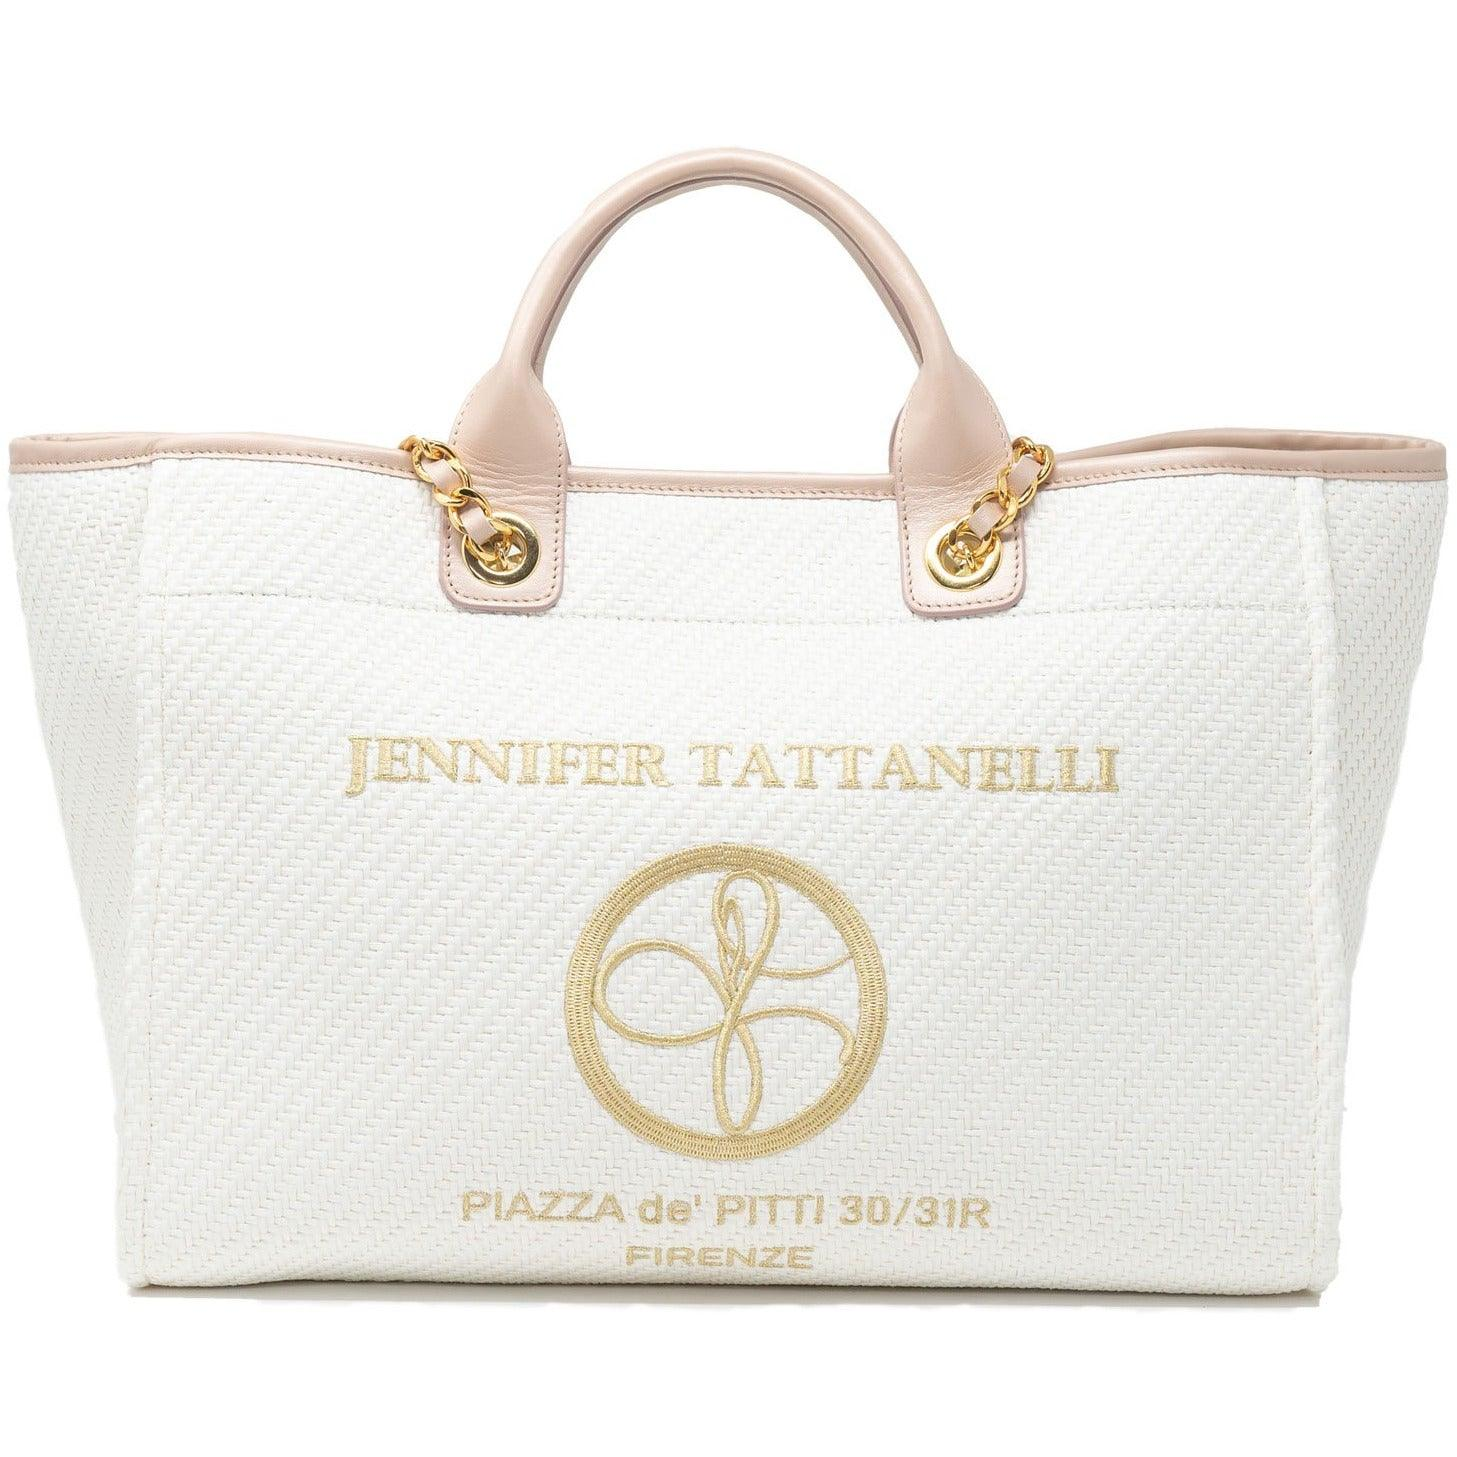 JT309 Shopping Bag Palm Beach - New Fall Winter 2019-2020 Collection